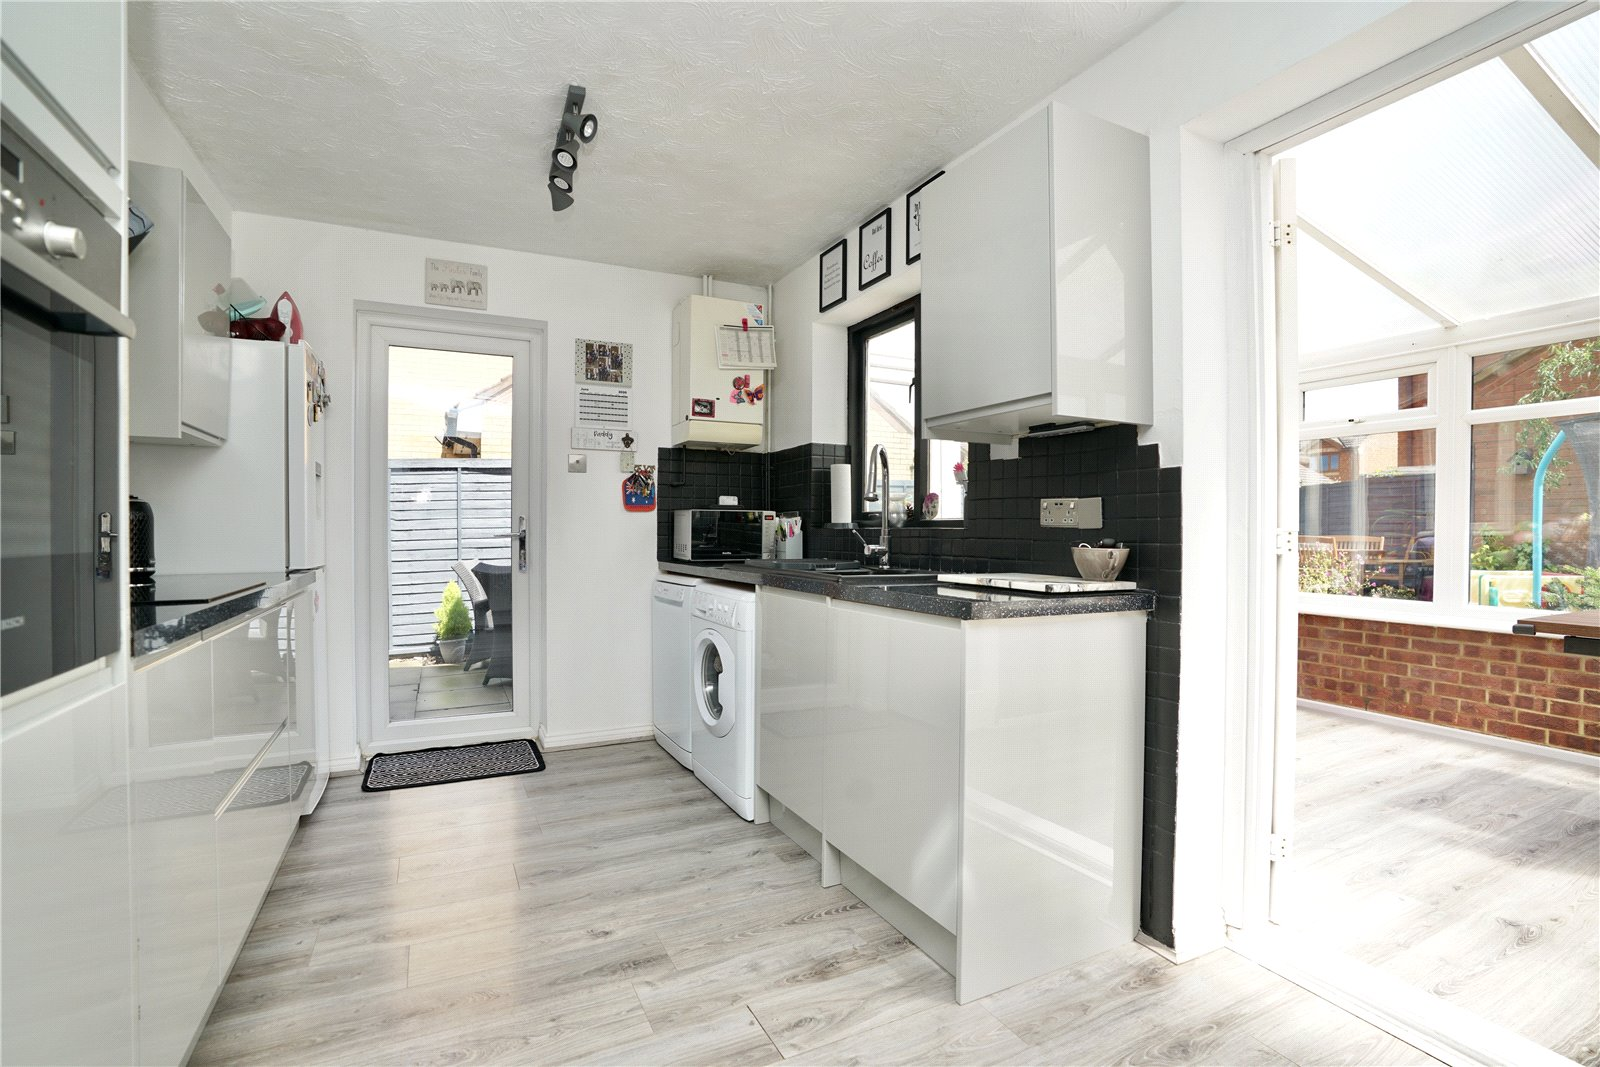 3 bed house for sale in Swift Close, St. Neots 5